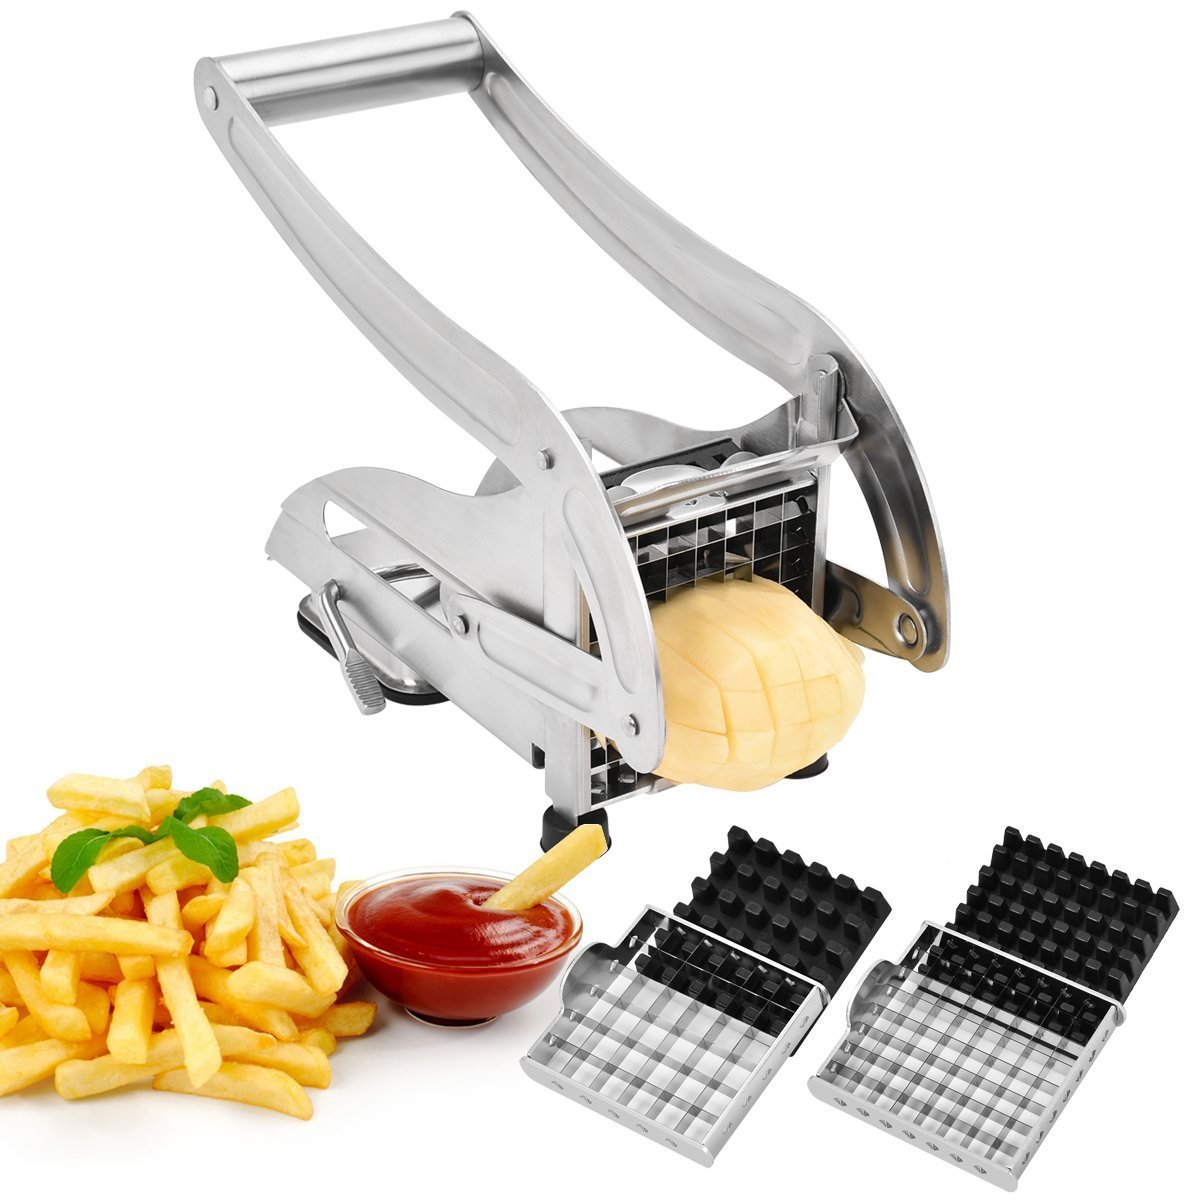 French Fry Cutter, CUGLB Homemade Potato Chip Chipper with 2 Thickness Adjustable Stainless Steel Blades and Non-Slip Suction